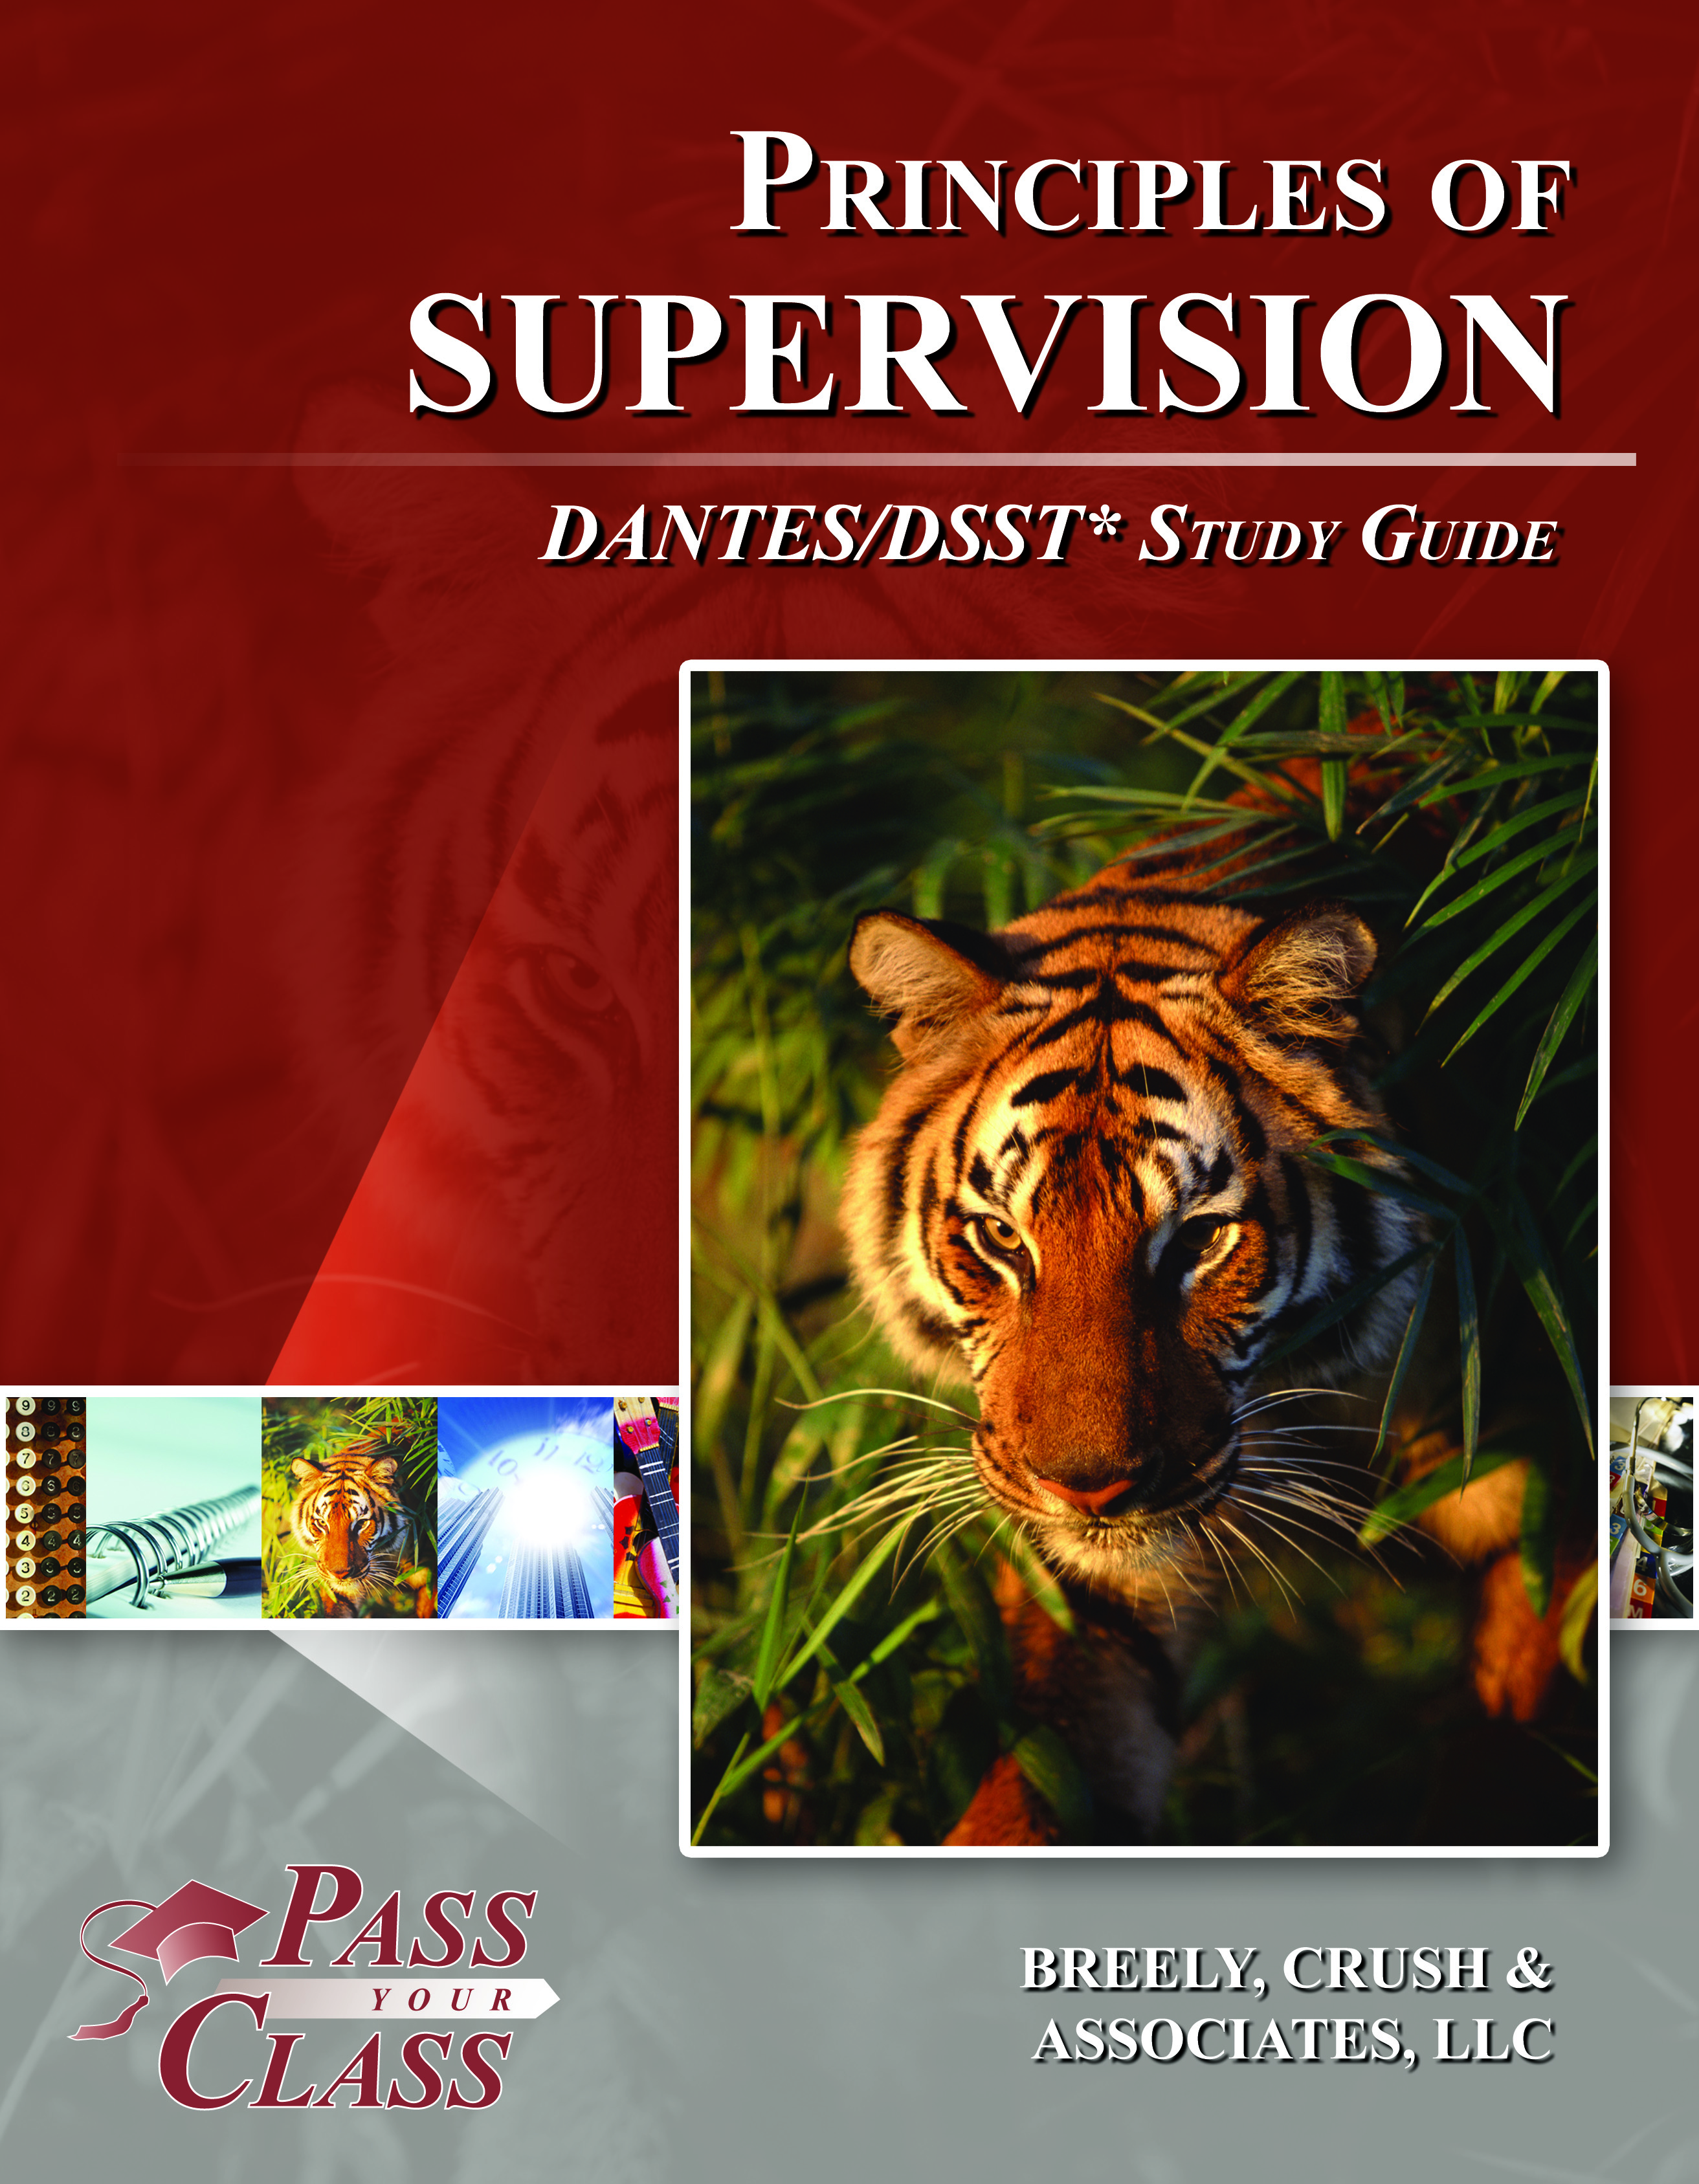 Principles of Supervision DANTES